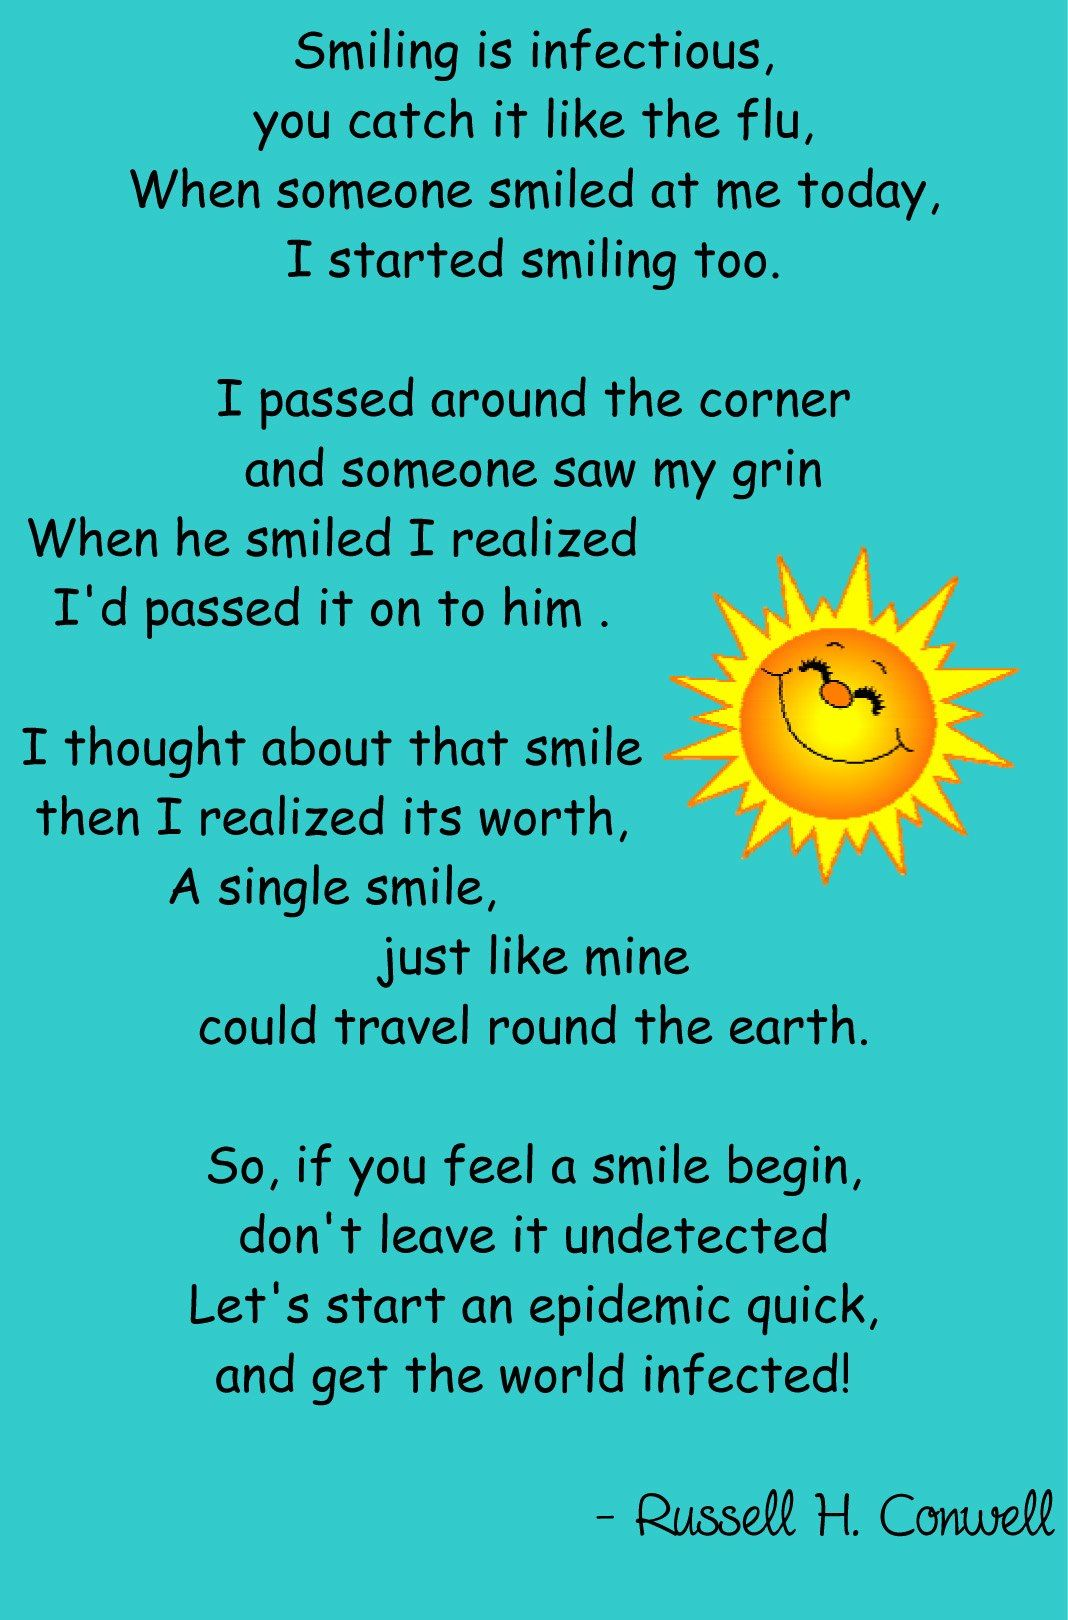 Smile poems and quotes - Smiling Is Infectious